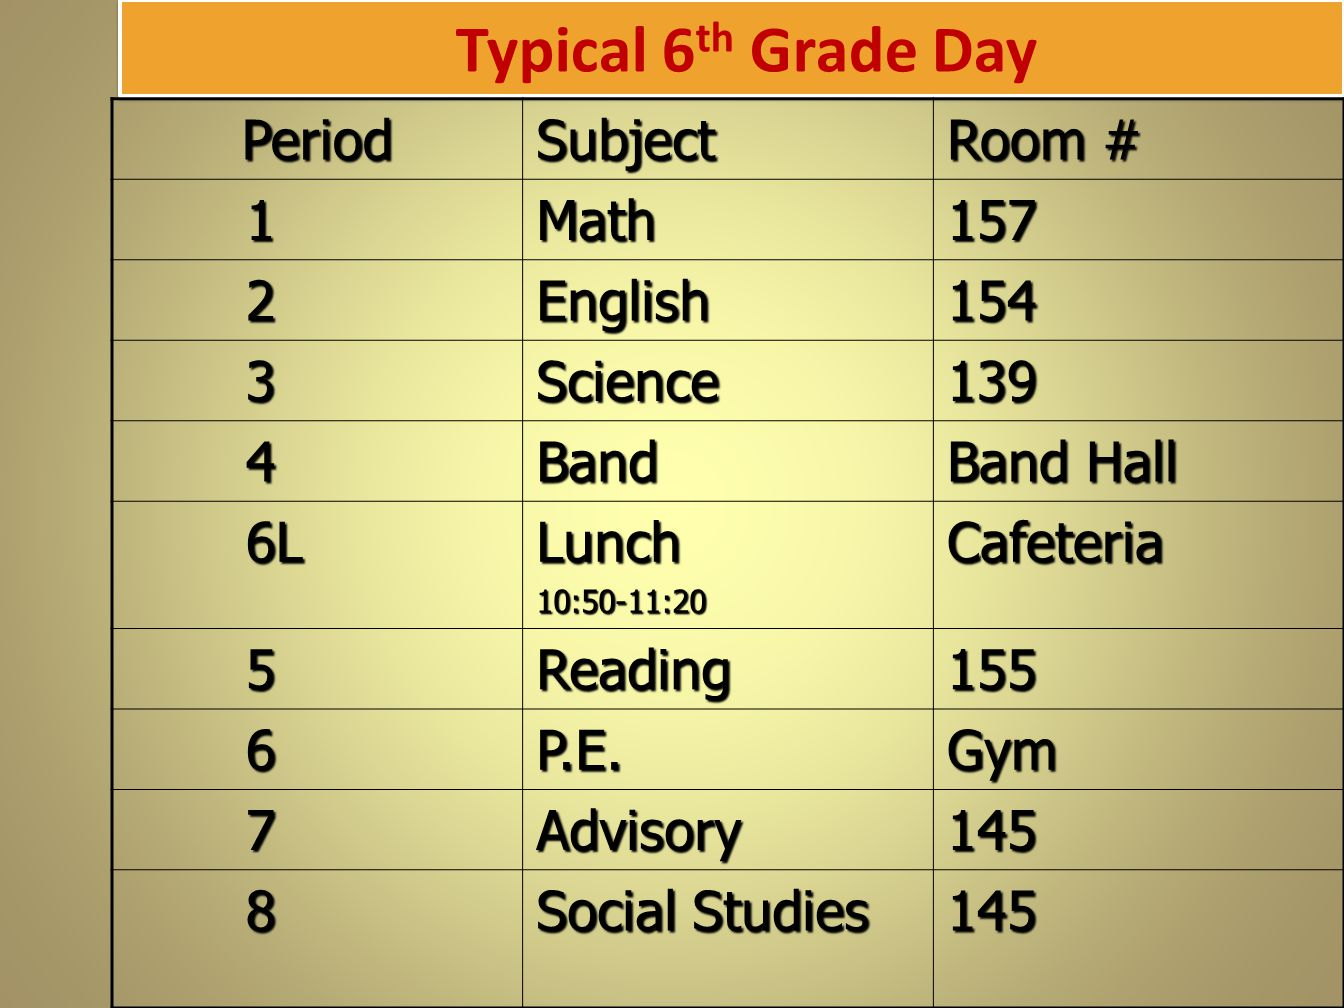 Typical 6th Grade Day Period Subject Room # 1 Math 157 2 English 154 3